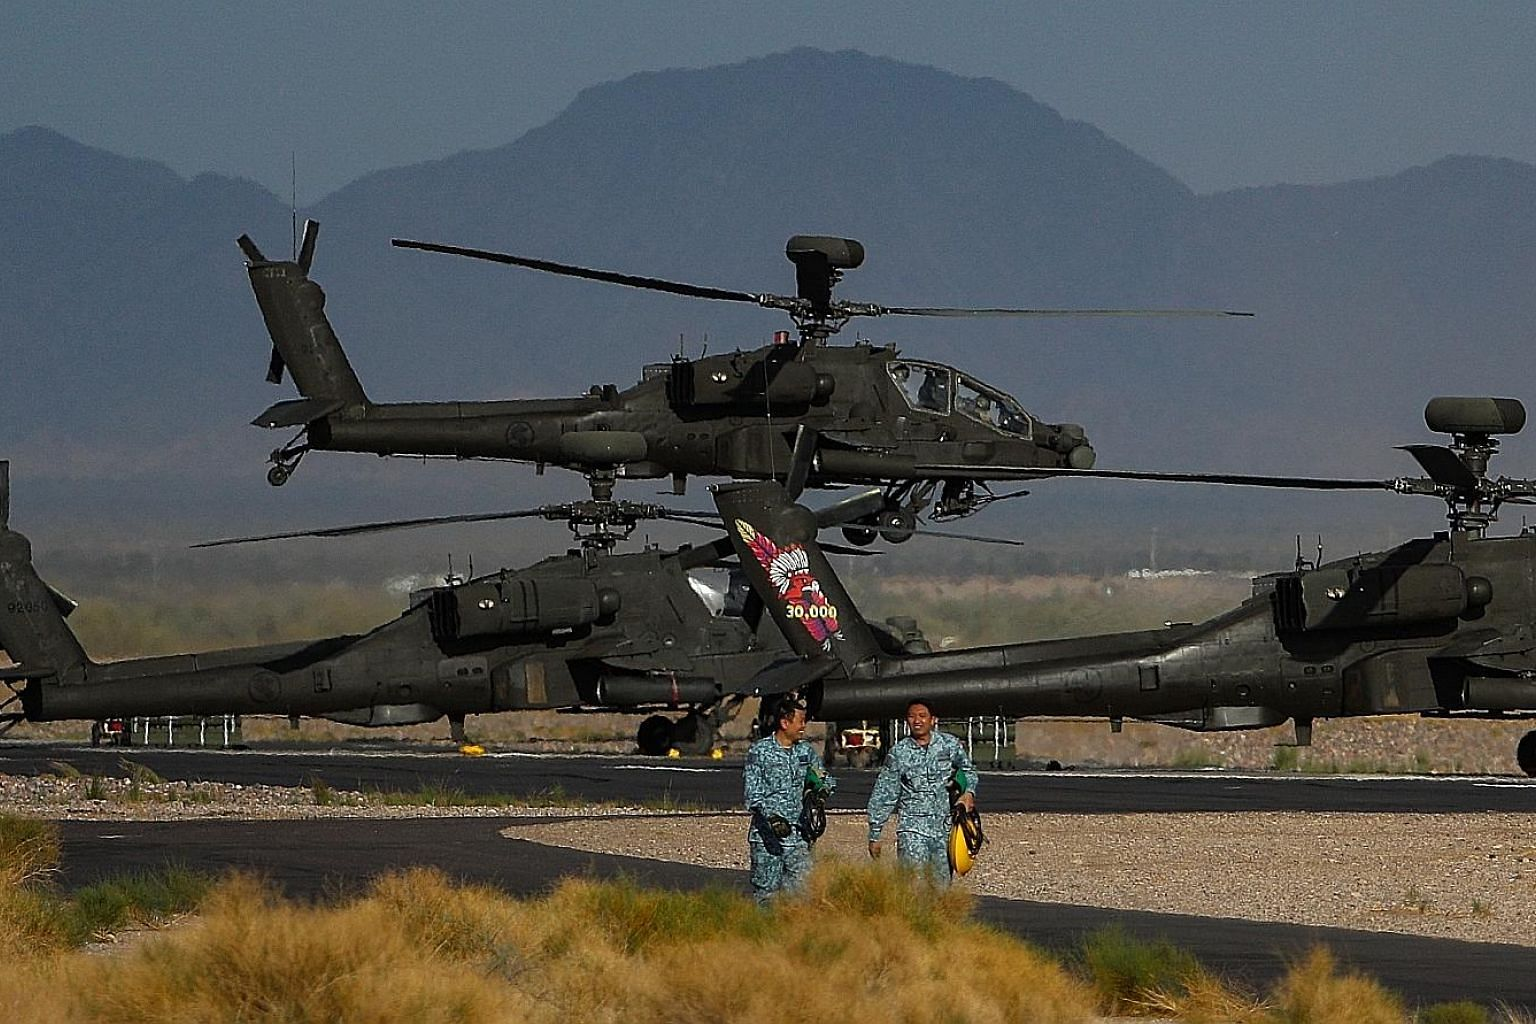 Apache helicopters taking off at Gila Bend Air Force Auxiliary Field in Arizona on Monday during the Forging Sabre exercise. The 16-day live-firing exercise, which began on Nov 28, features upgrades to weapon systems and involves a record 800 personn